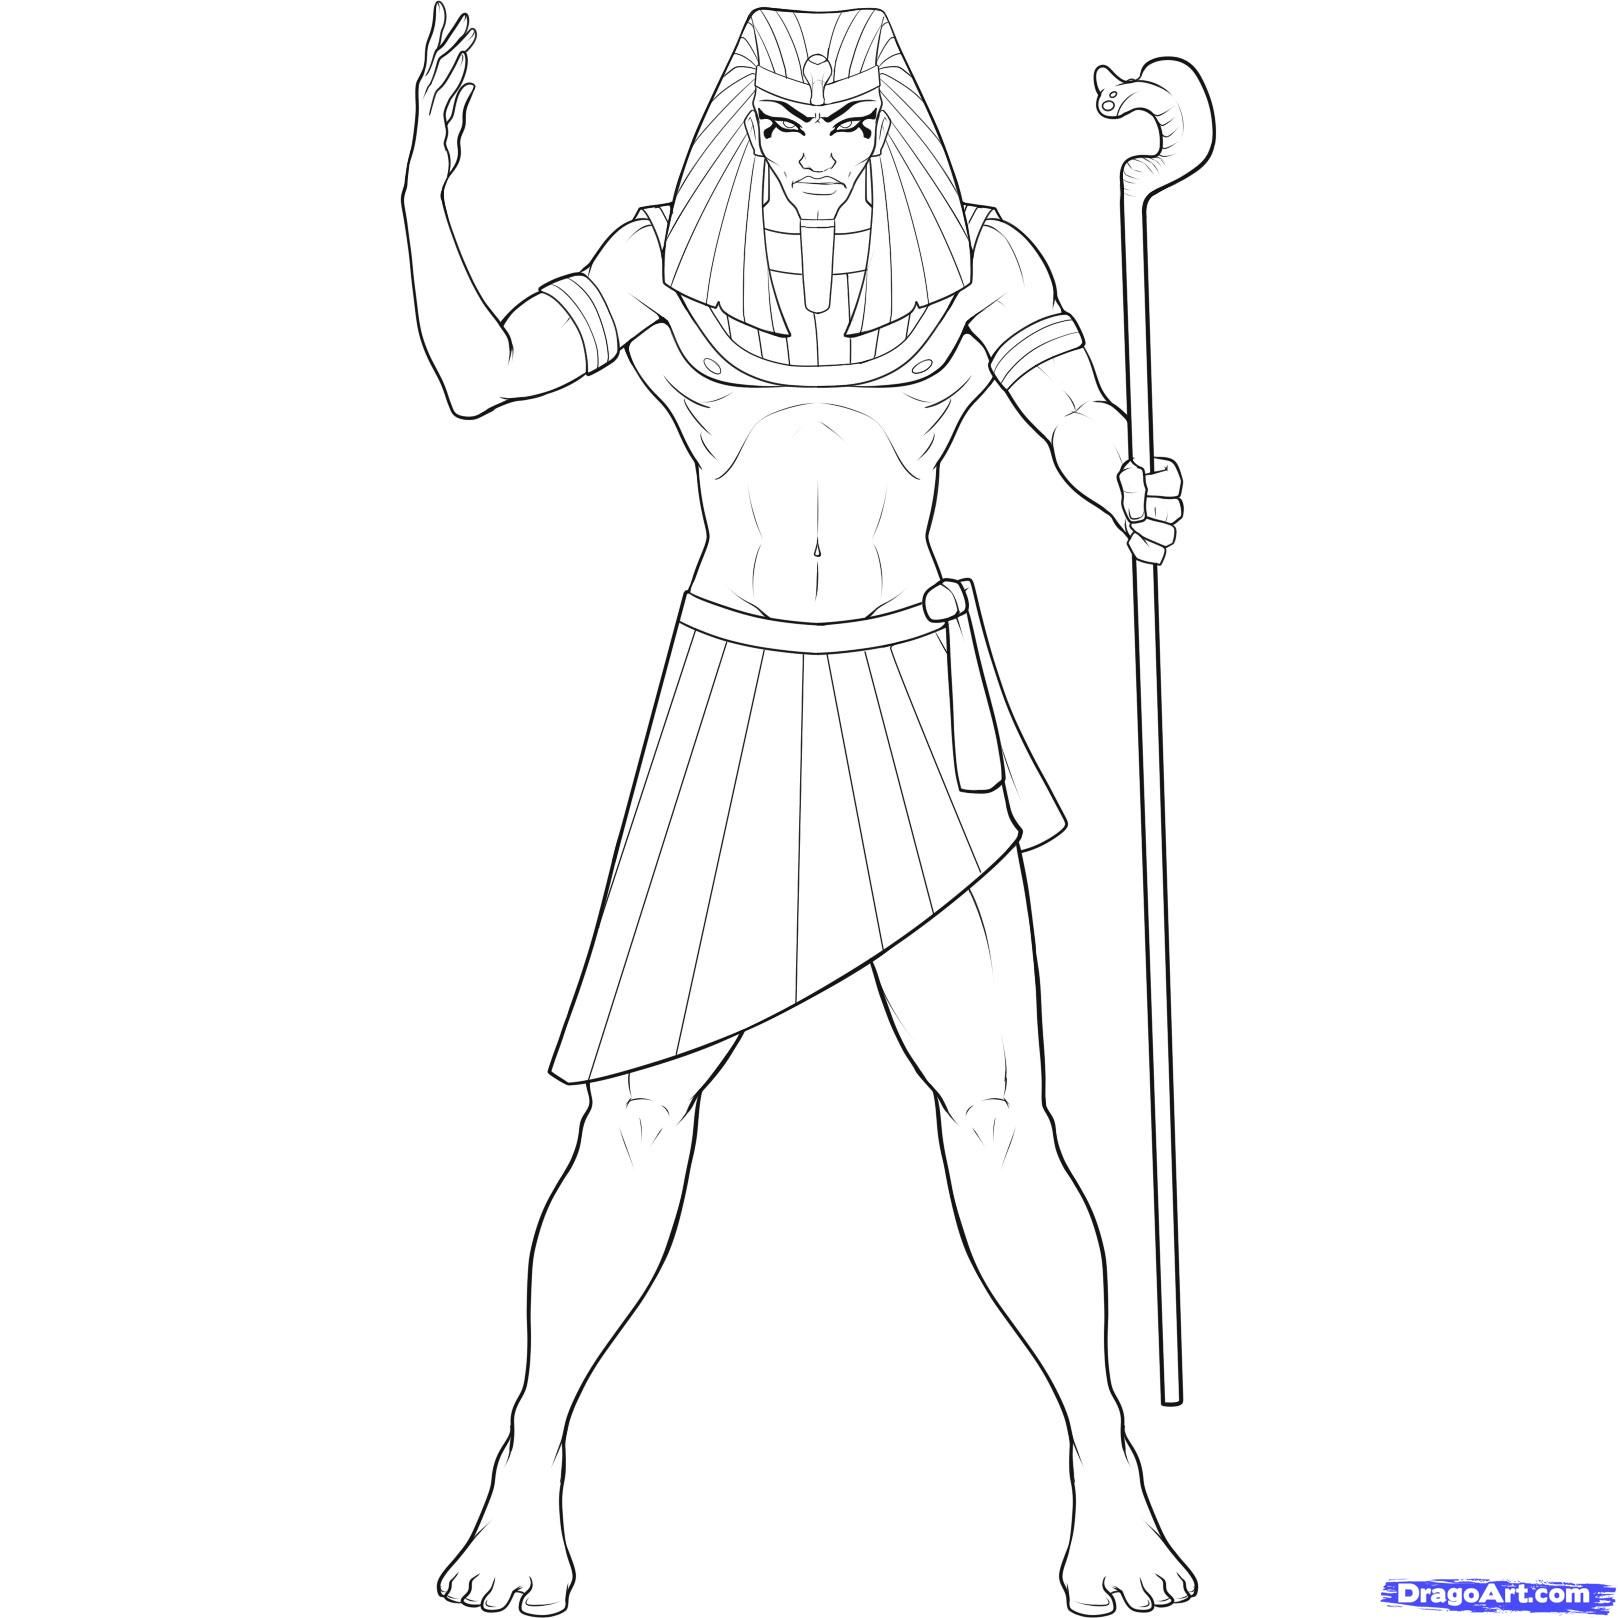 How to draw the Pharaoh with a pencil step by step